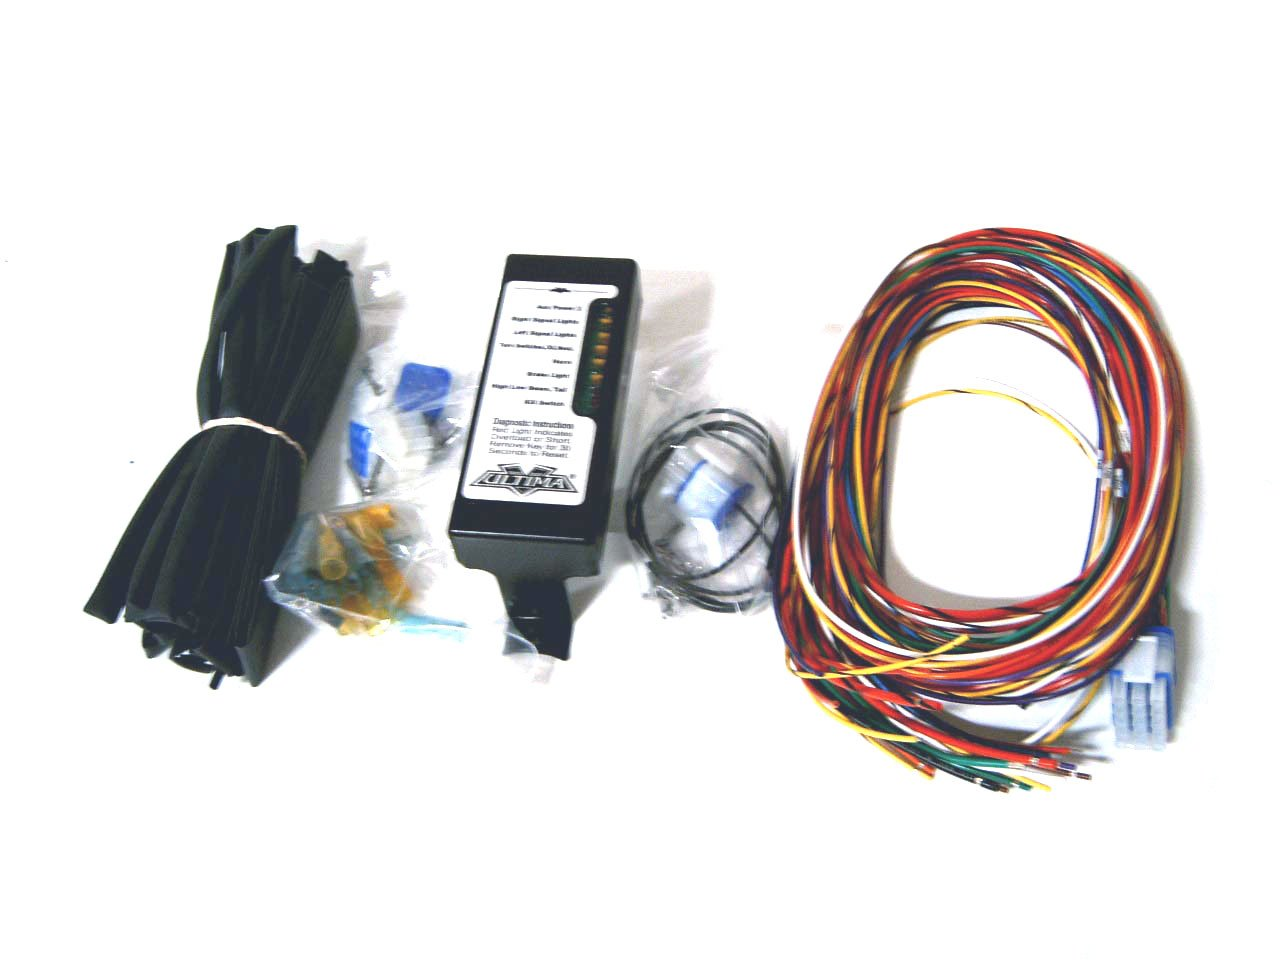 61DV2Bq5%2BHL._SL1280_ amazon com ultima complete wiring harness kit for harley davidson universal wiring harness kits at virtualis.co